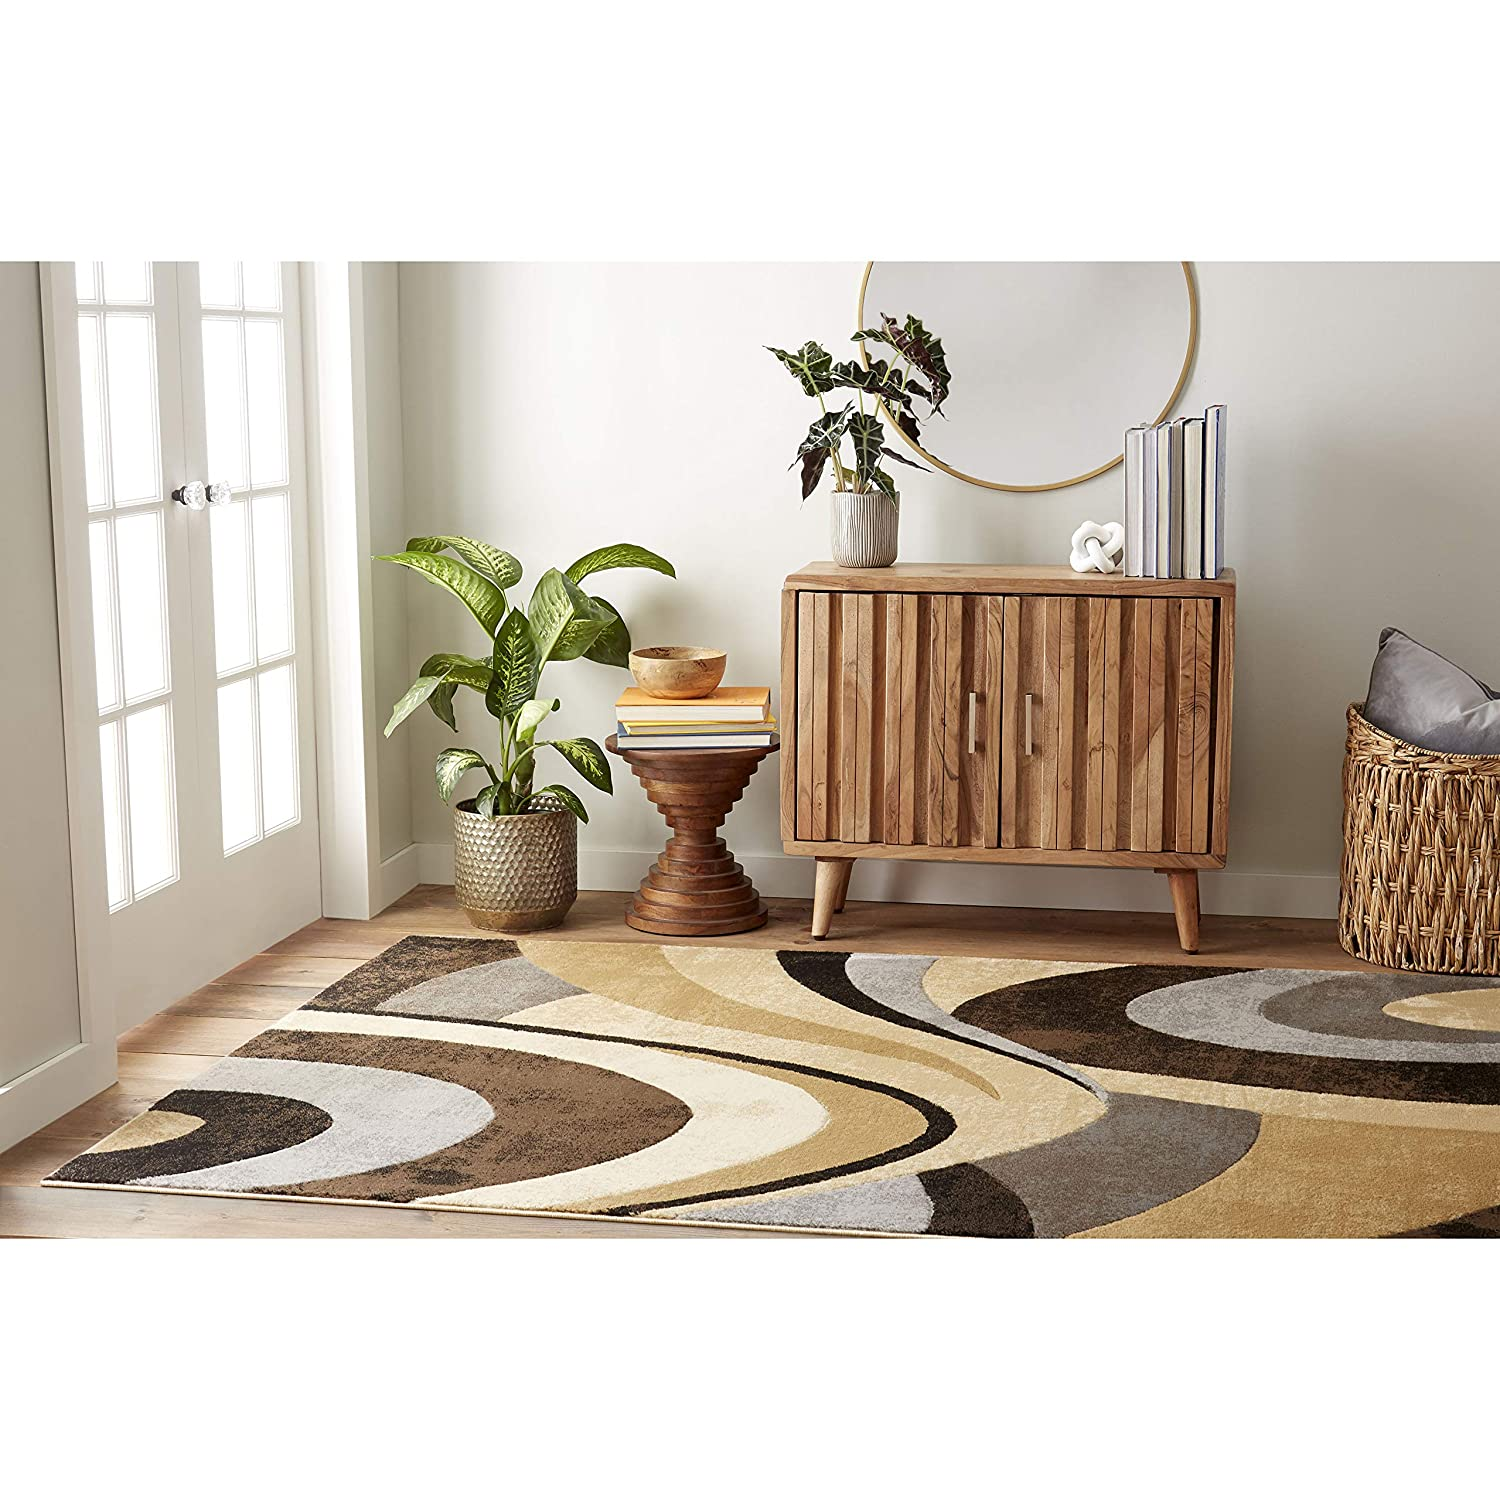 Home Dynamix Tribeca Slade Modern Area Rug, Abstract Brown/Gray 3 Piece Set